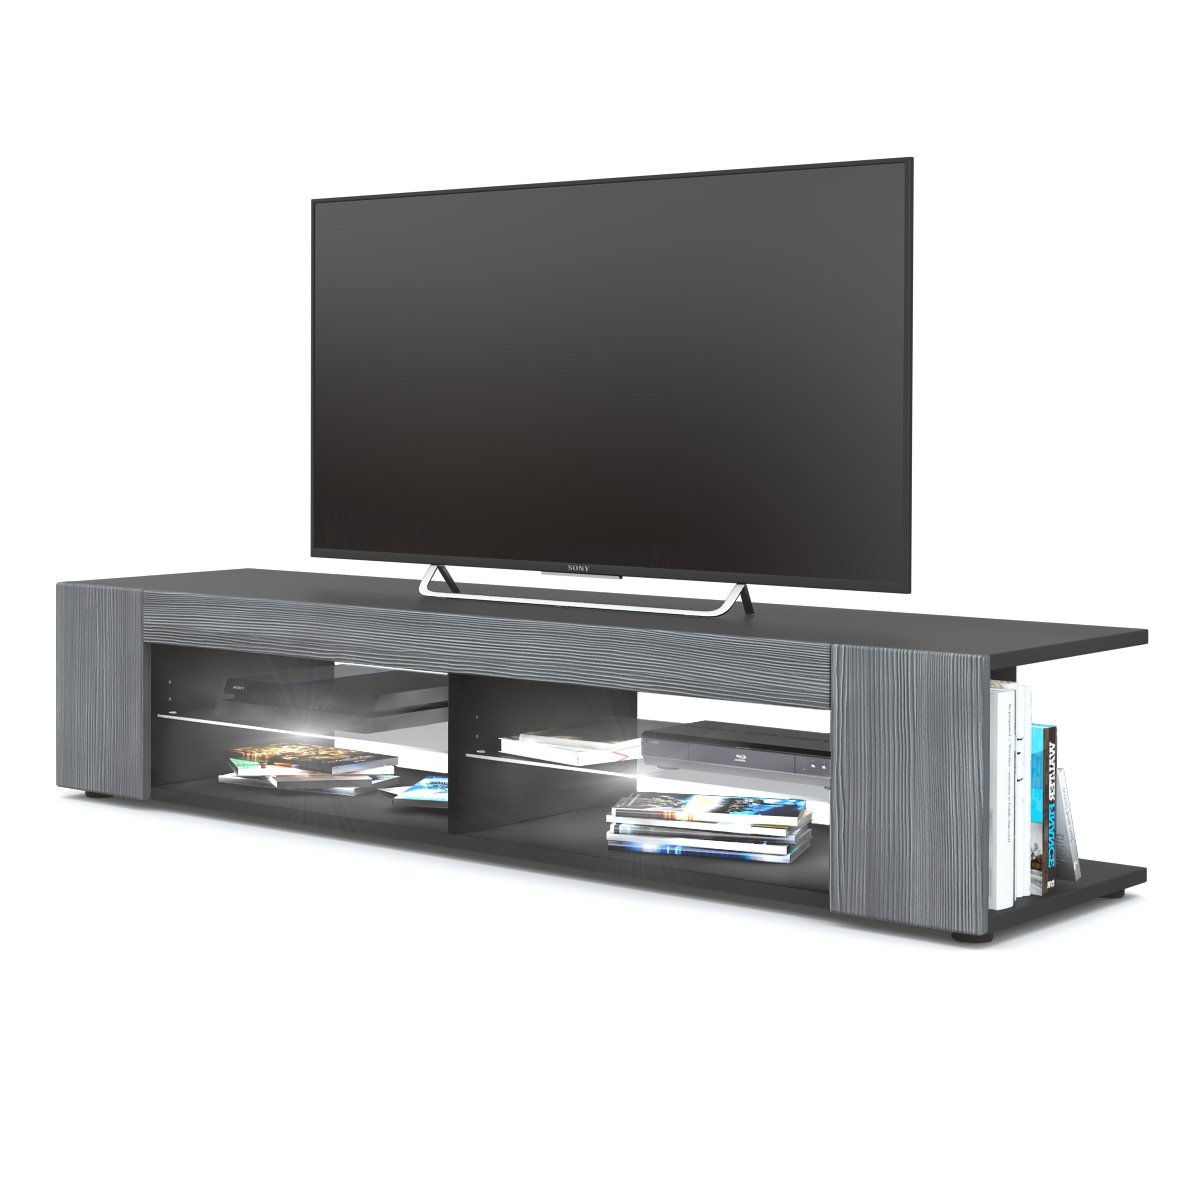 Front in Avola-anthracite with LED in White Vladon TV Unit Stand Movie, Carcass in Black matt Front in Grey High Gloss